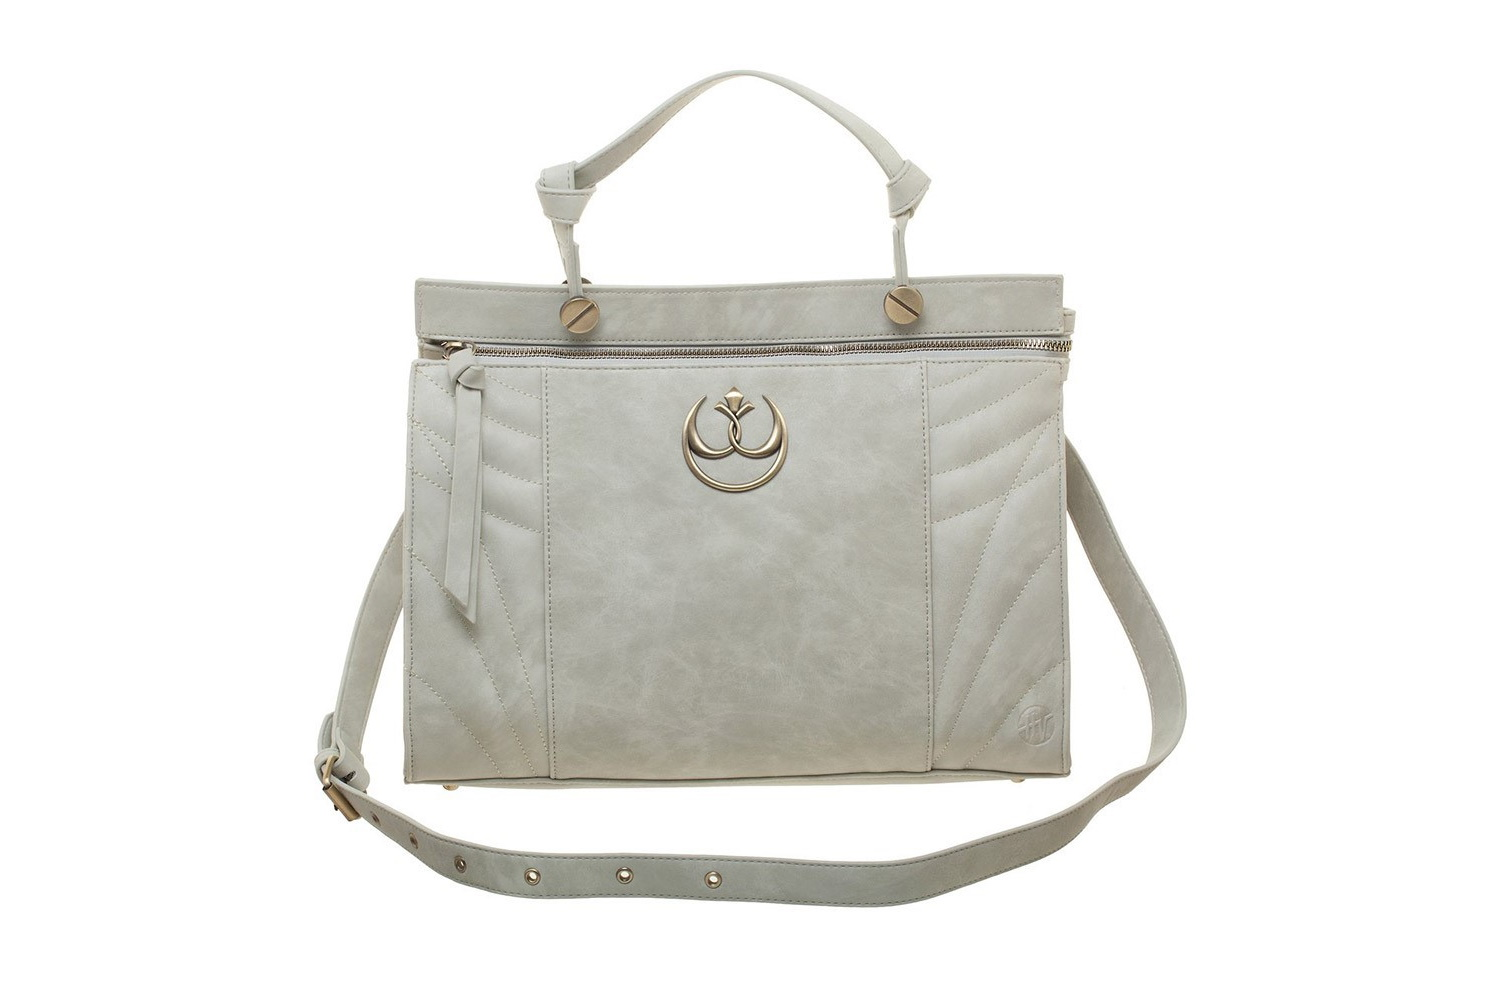 Princess Leia Handbag at Mighty Ape NZ